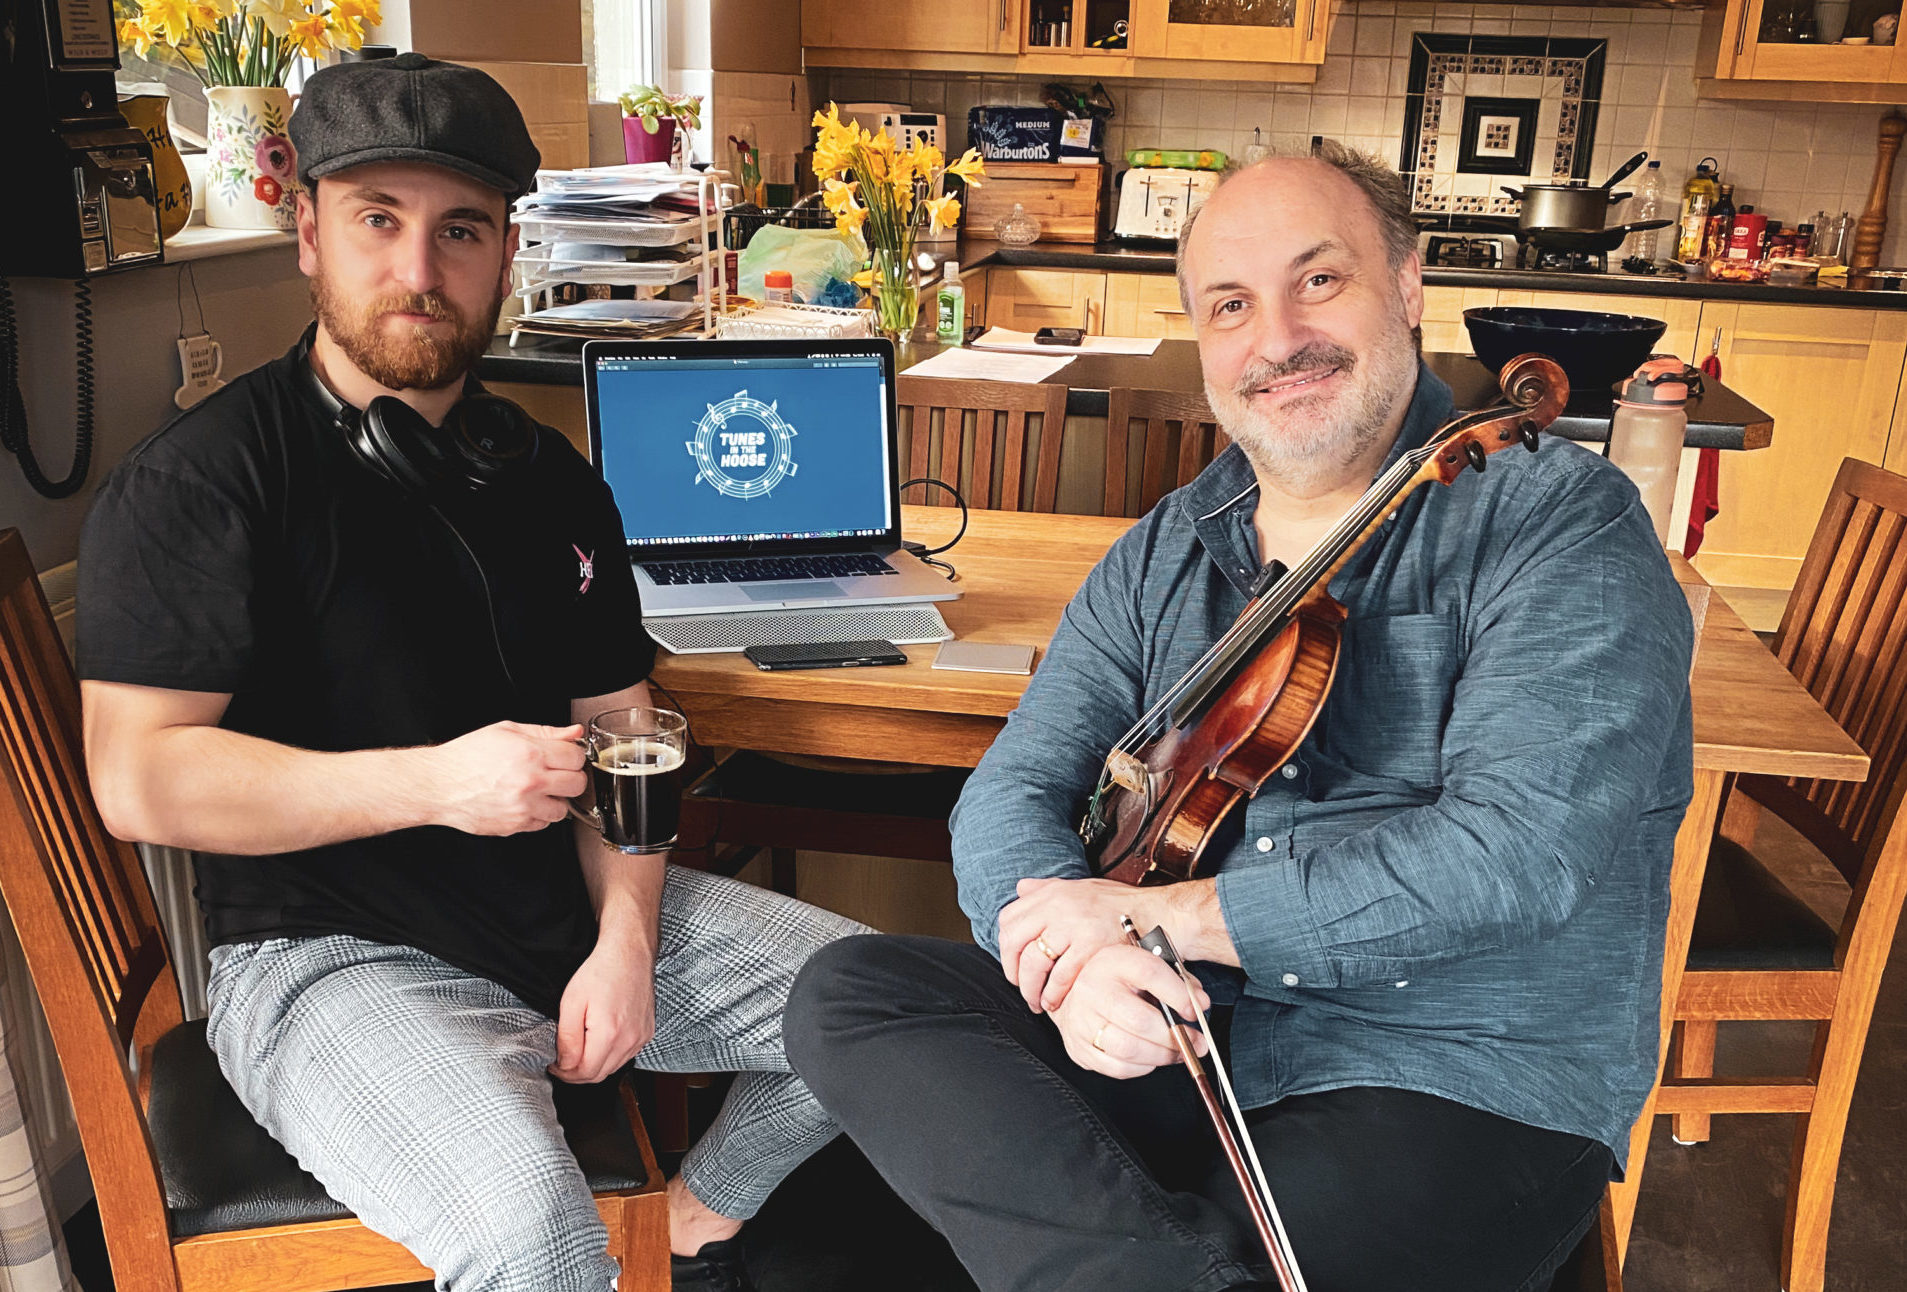 Father and son, both named Martin MacLeod, from the Tunes in the House project.